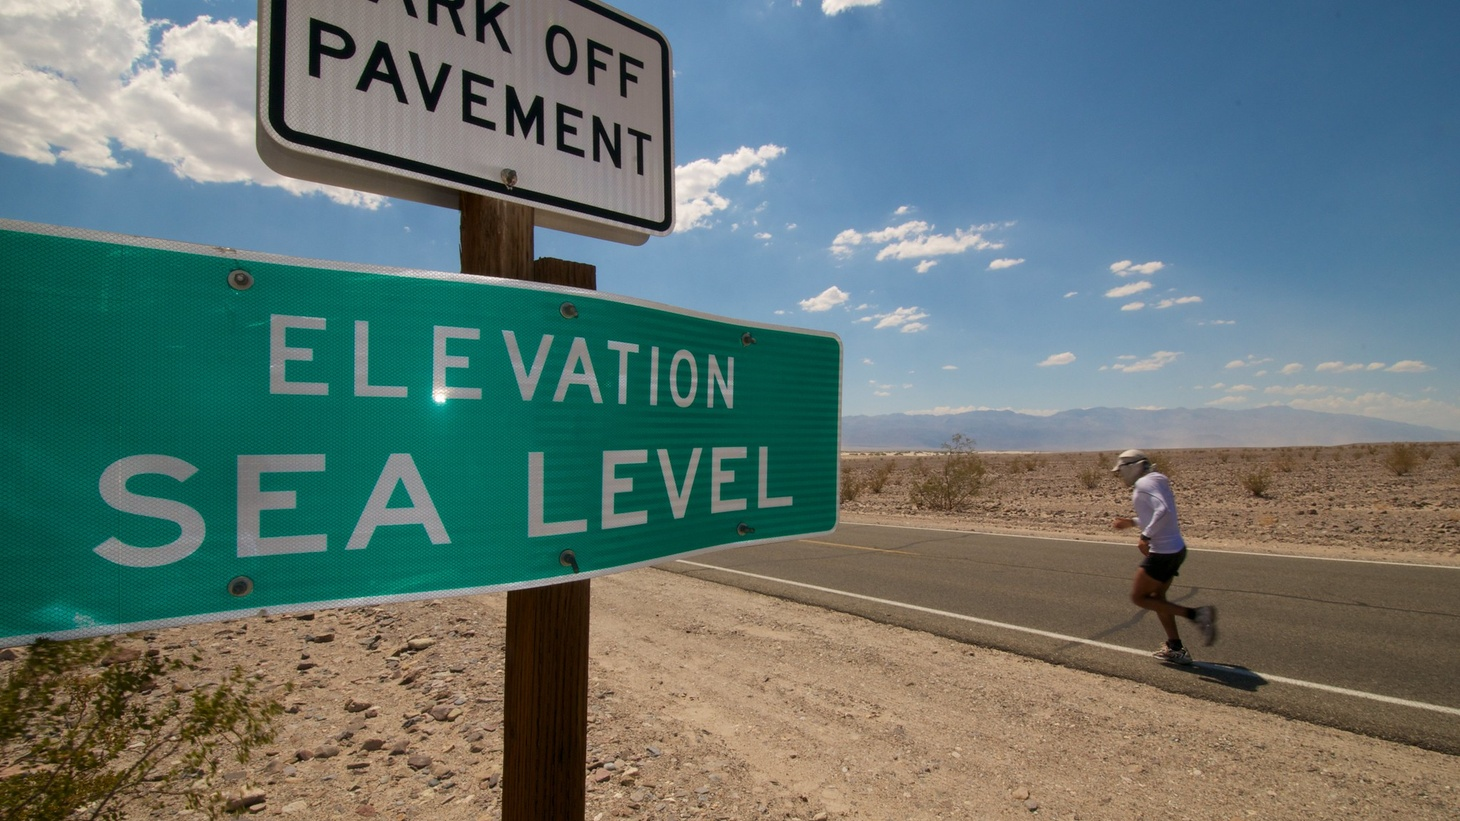 """Some of the hottest temperatures on the planet are not stopping the Badwater ultramarathon runners from racing through Death Valley. To attempt to finish a 135-mile race within two days, """"a certain amount of insanity is a prerequisite,"""" according to Bob Becker, a 76-year-old ultramarathoner."""